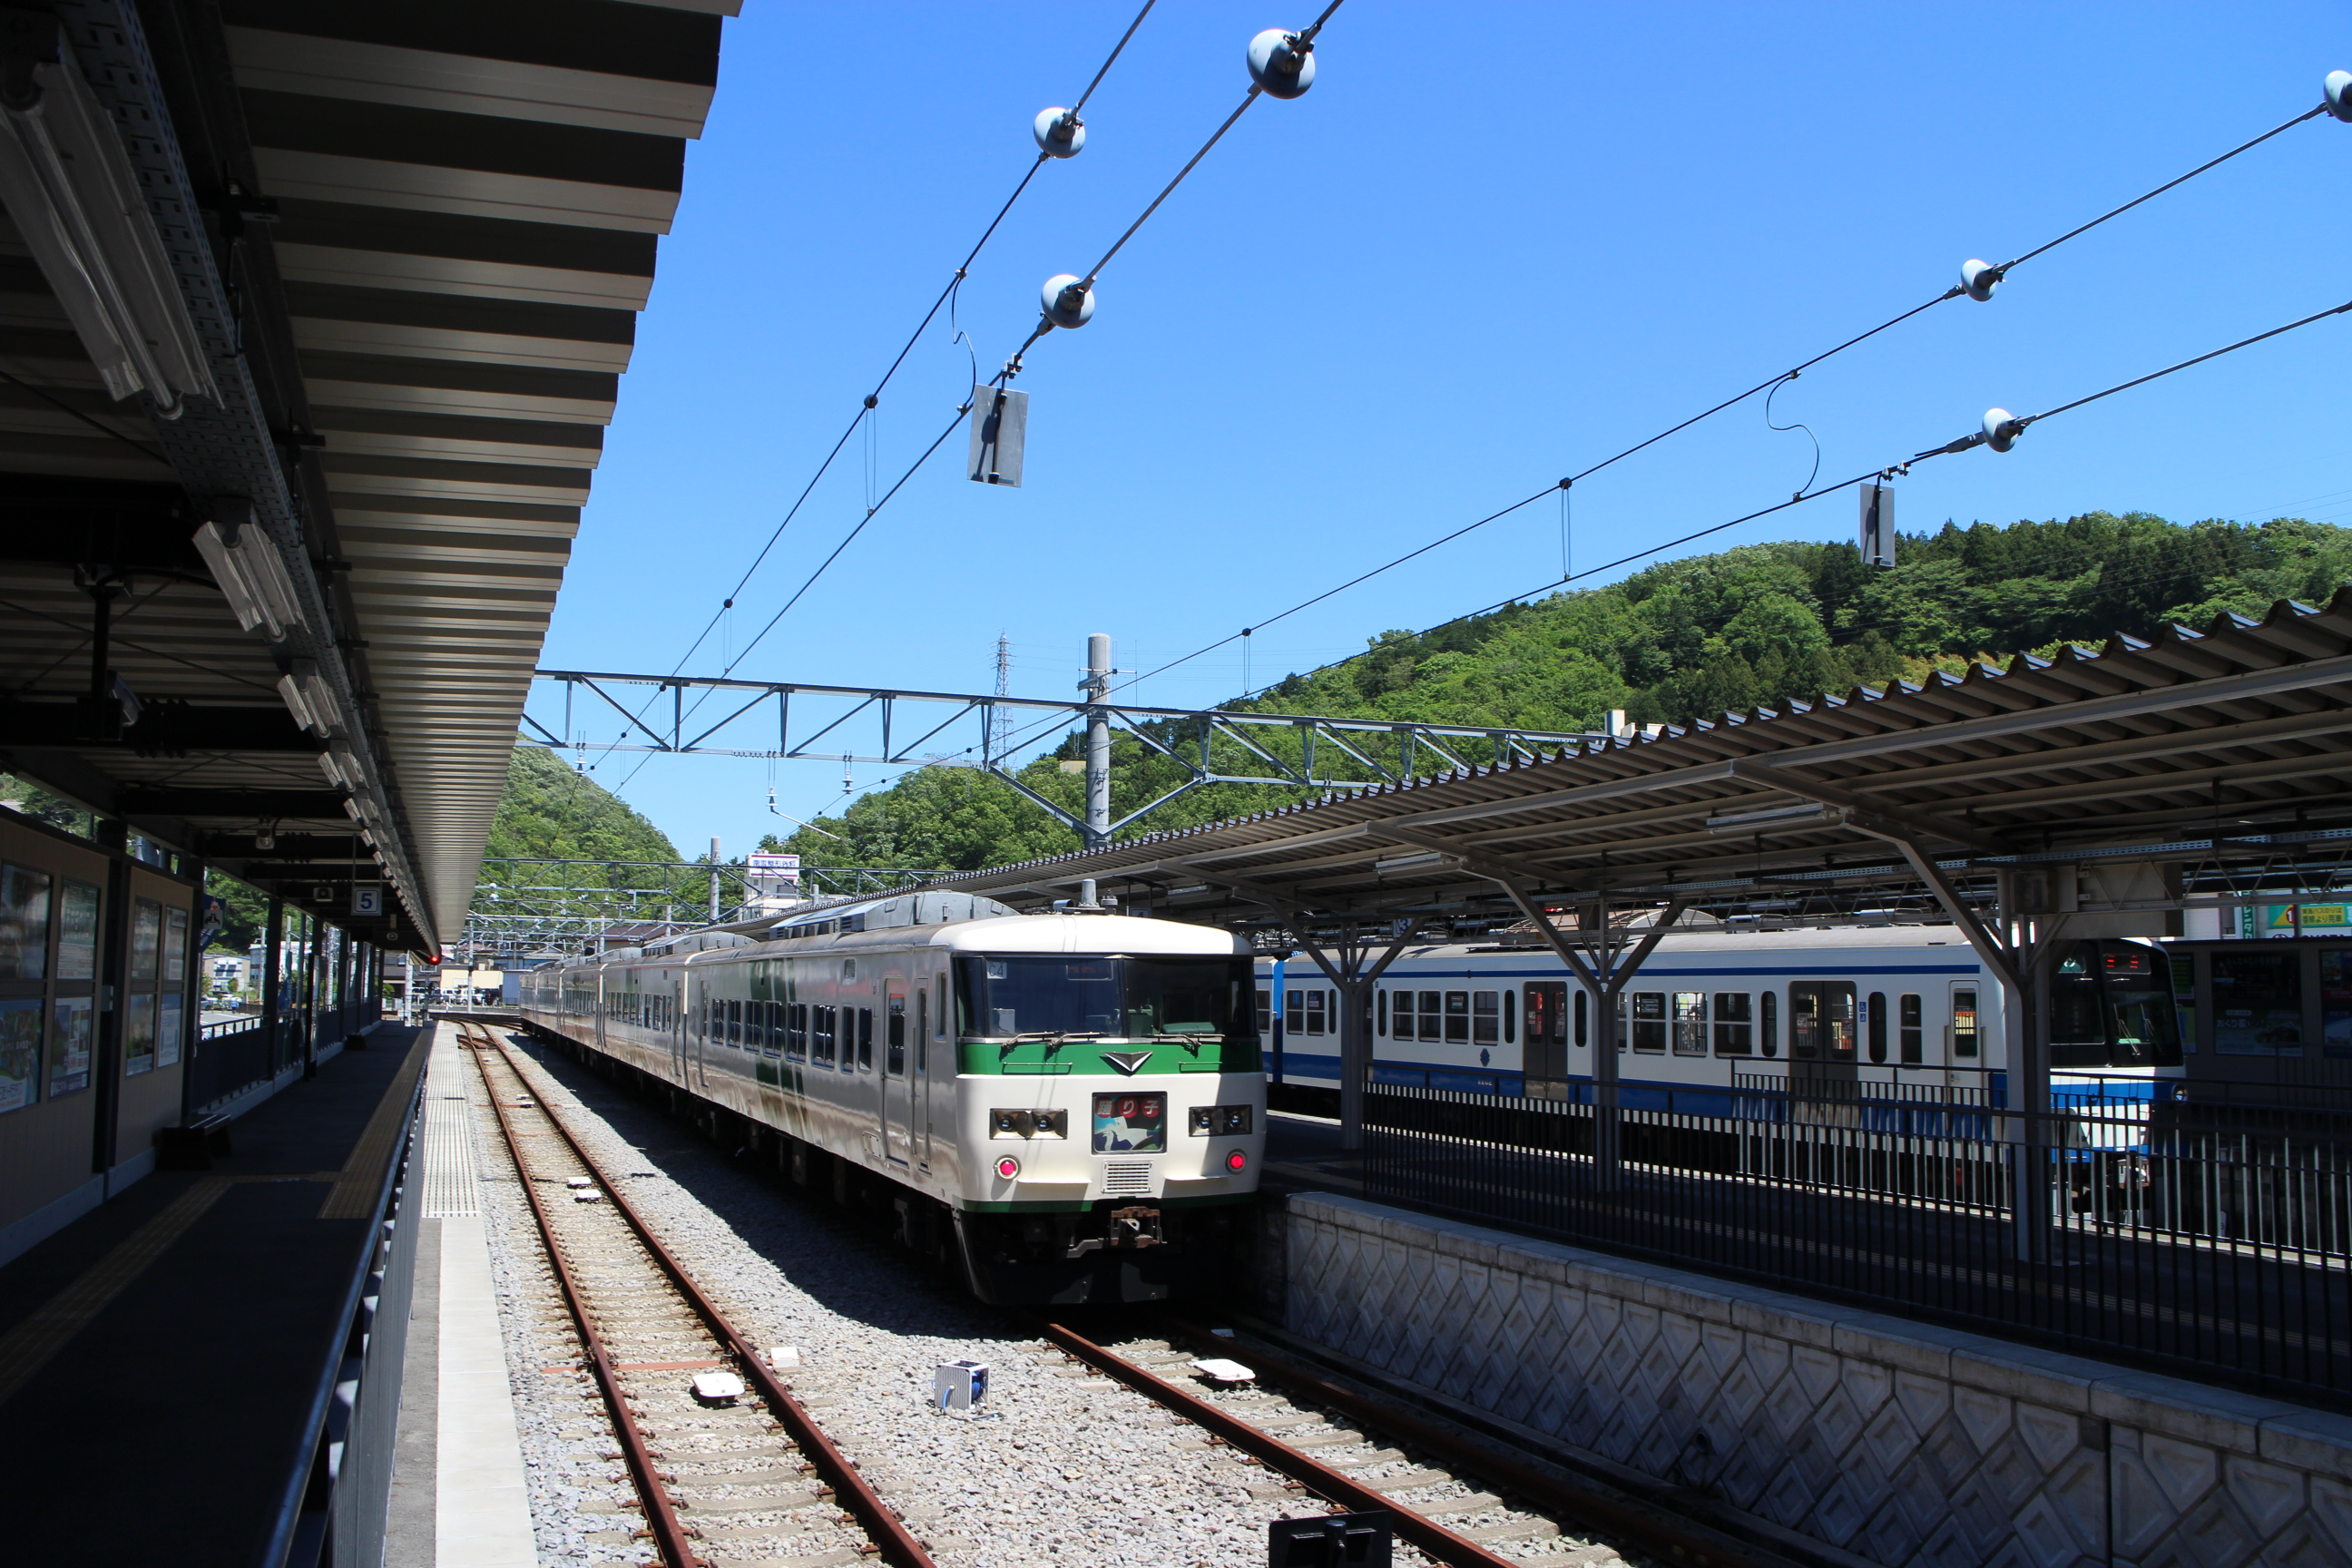 https://upload.wikimedia.org/wikipedia/commons/e/e0/Shuzenji_Station-platform_20160504.jpg